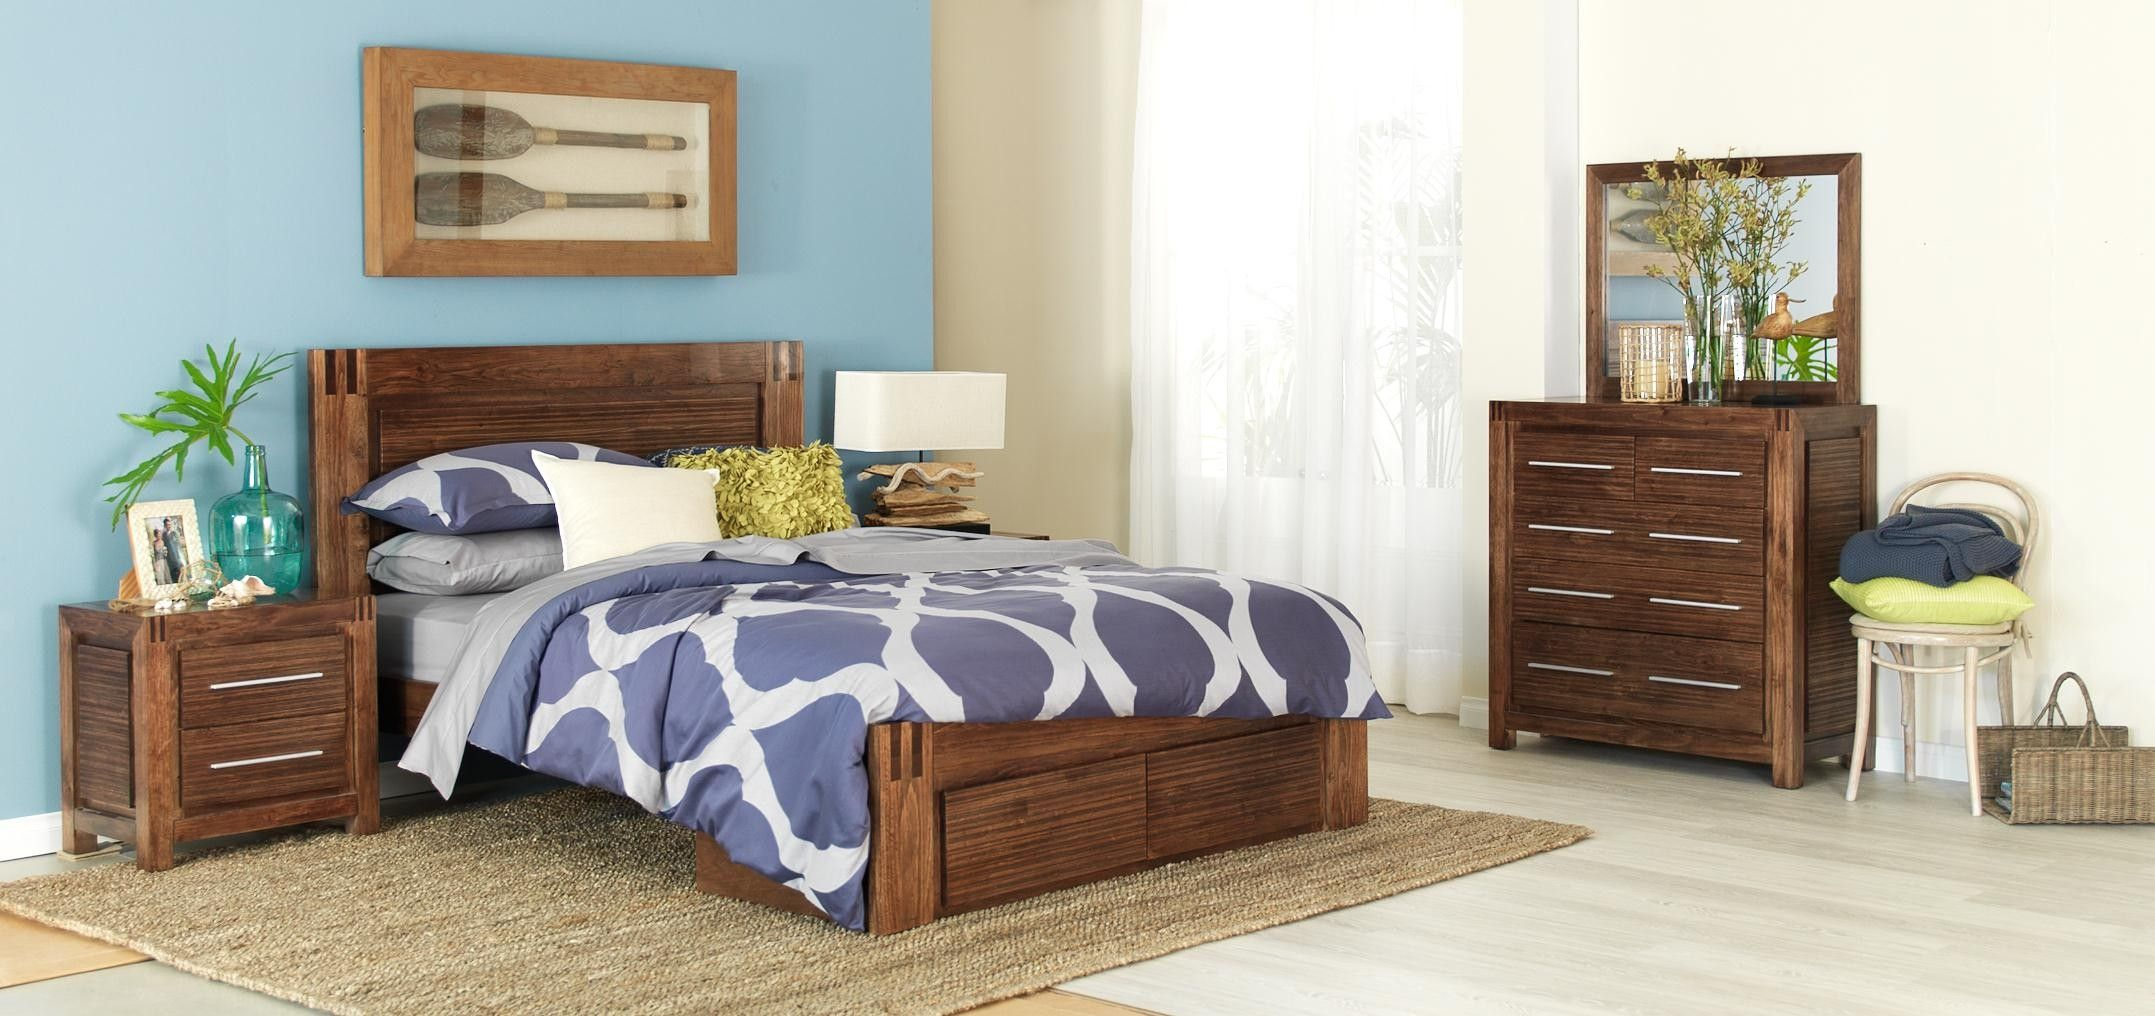 Forty Winks Mirage Modern Wood Grain Bedroom Furniture